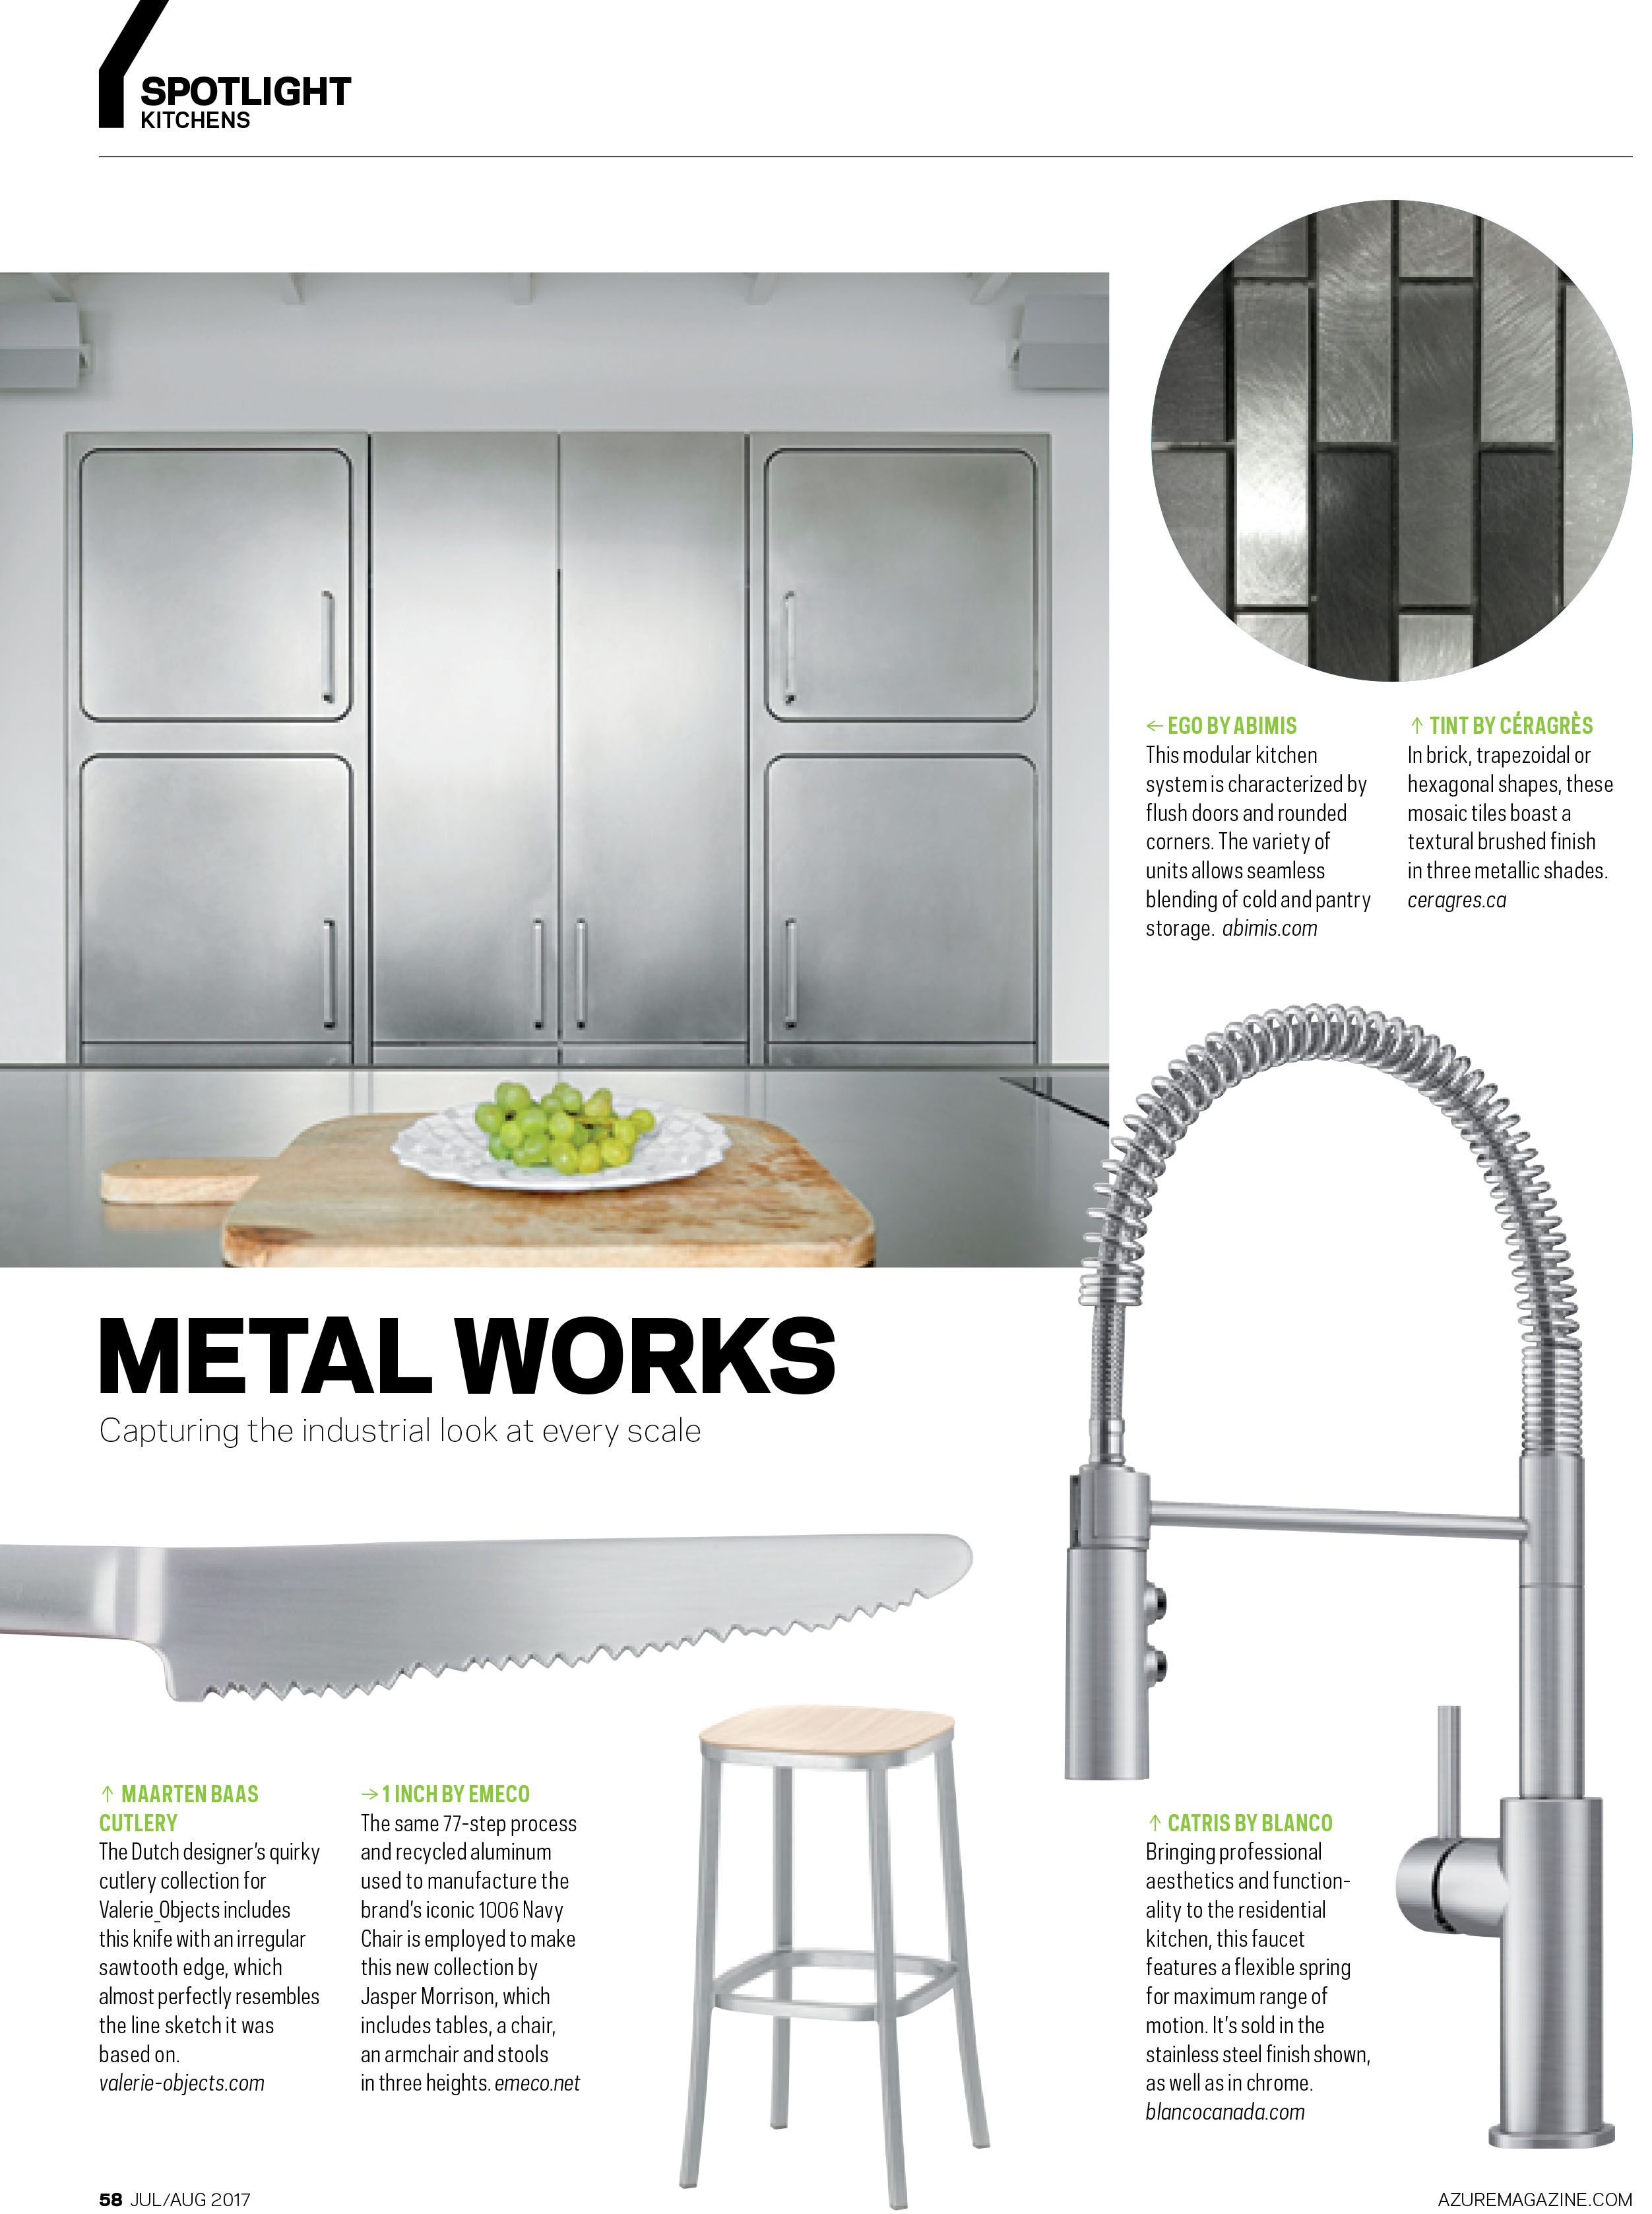 Stainless steel kitchens will always be in style ft blanco catris faucet in azure magazine